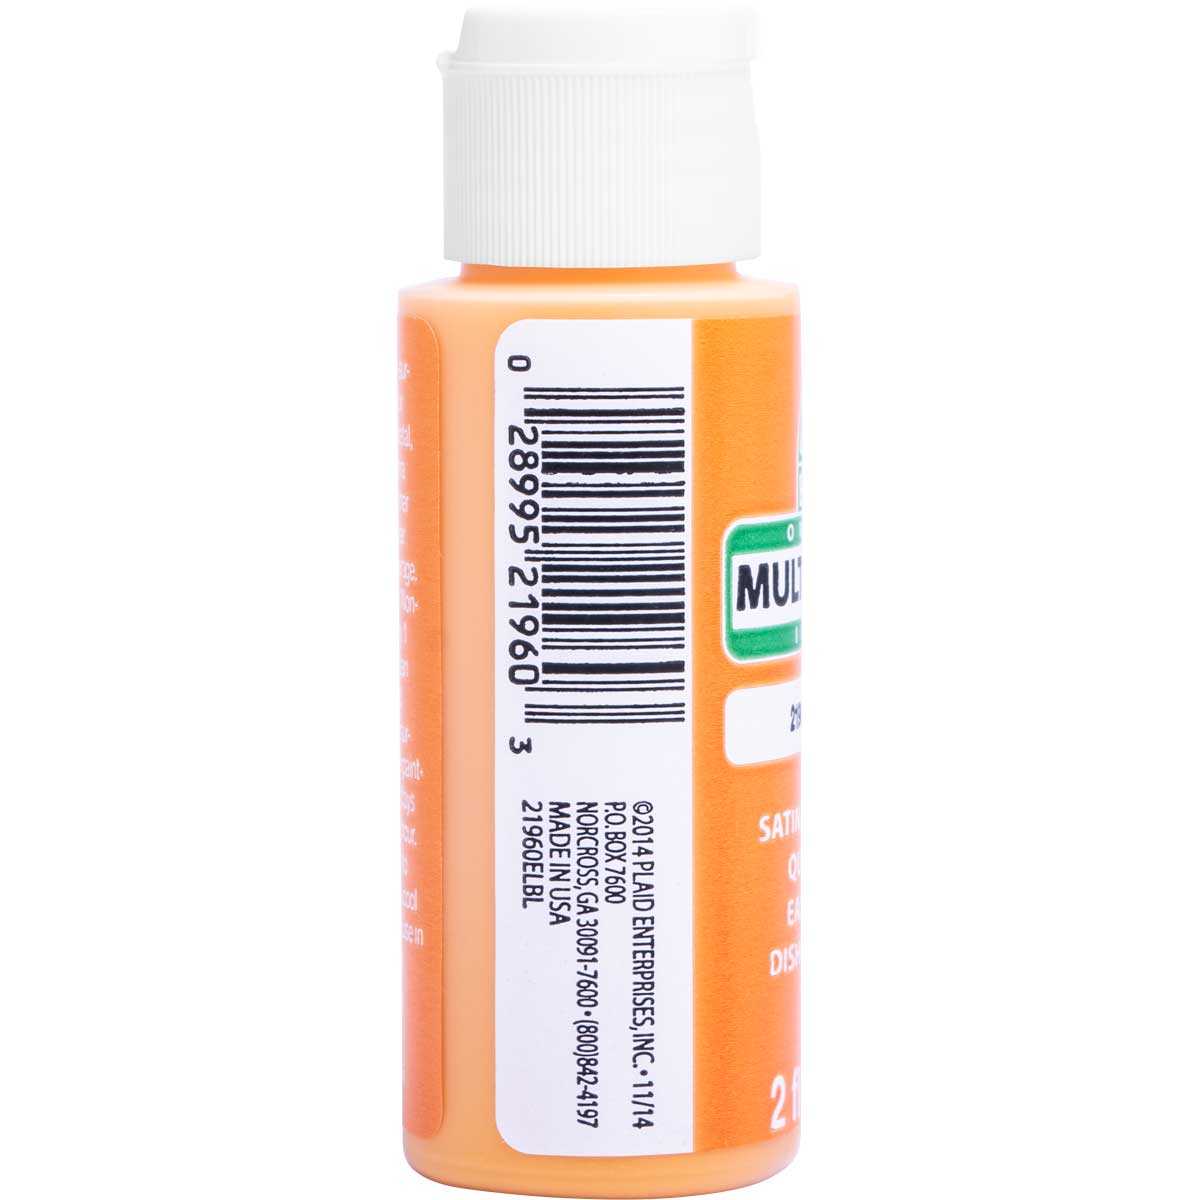 Apple Barrel ® Multi-Surface Satin Acrylic Paints - Nectarine, 2 oz. - 21960E